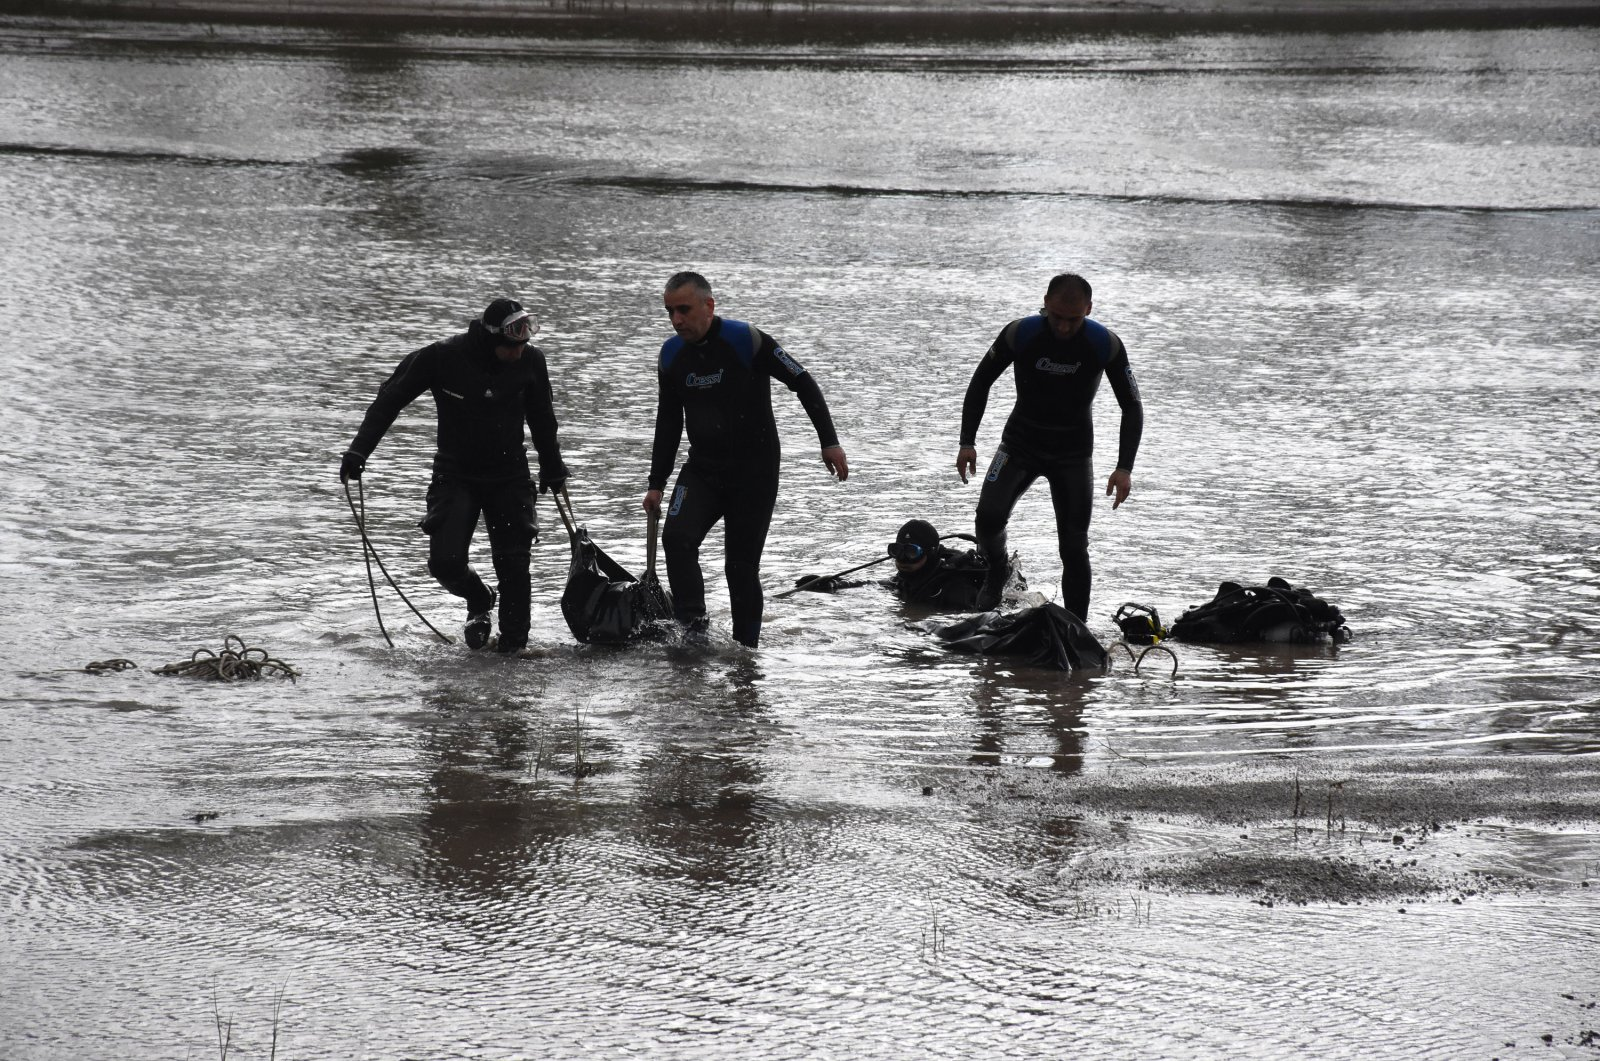 Divers carry the recovered bodies of Gülsüm Mayuk, 11, and her uncle, Melik Tunahan Nazalı, Denizli, Turkey, June 5, 2020. (DHA Photo)